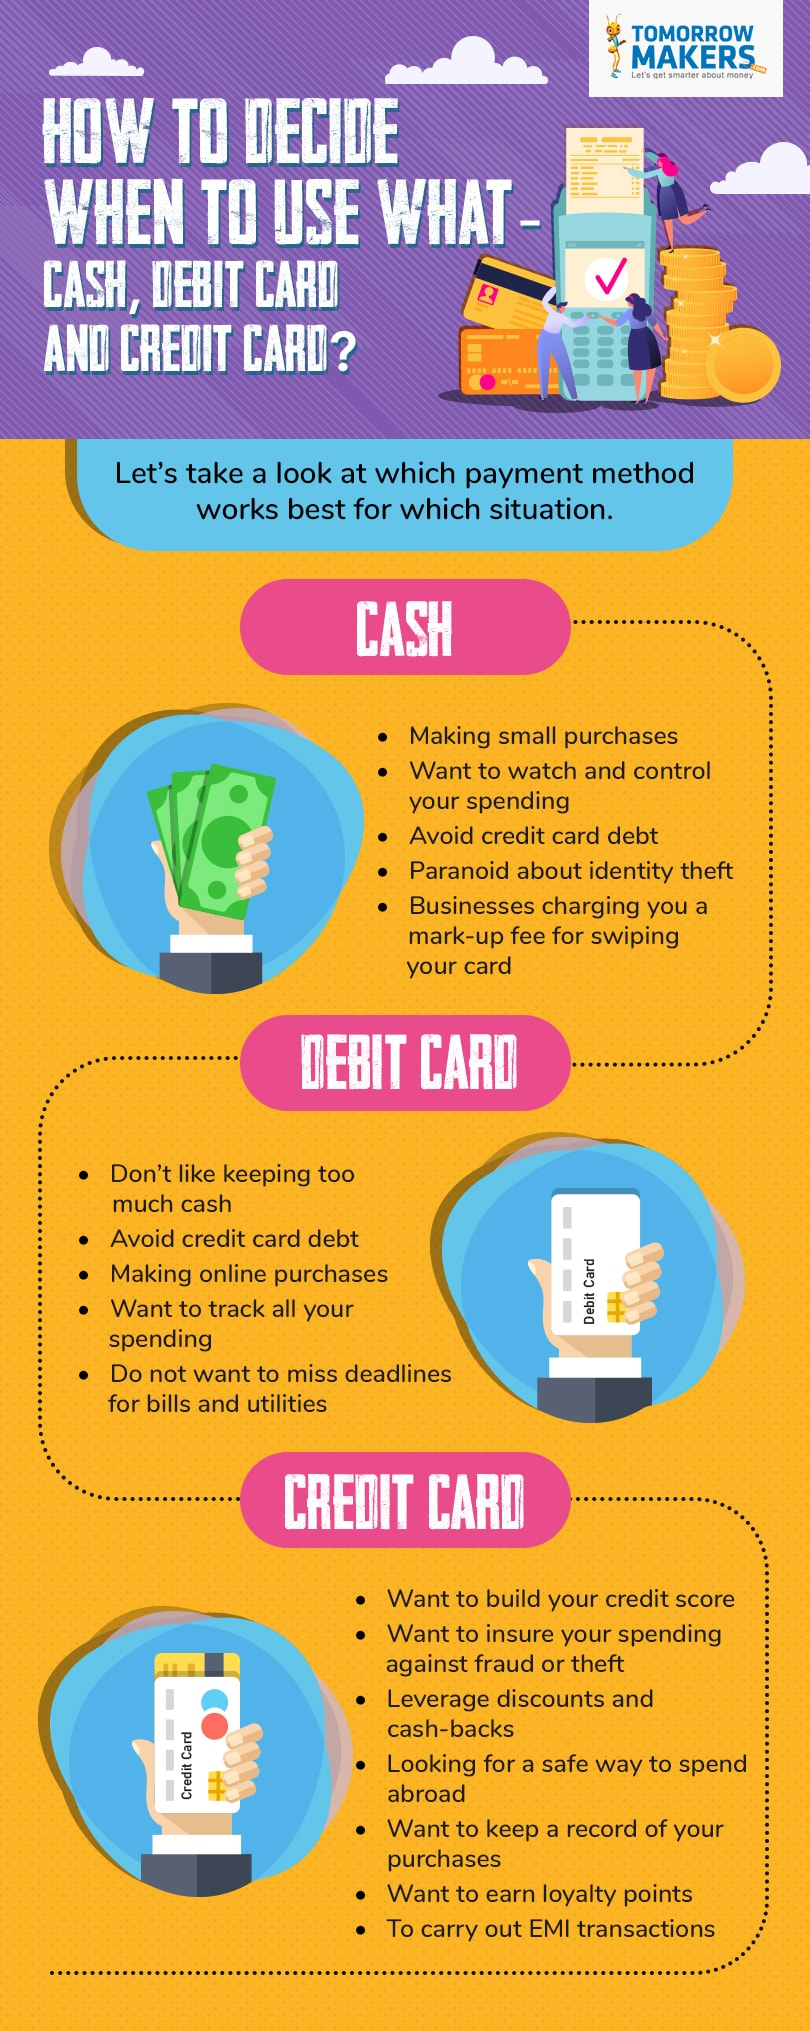 How to decide when to use what - cash, debit card and credit card?